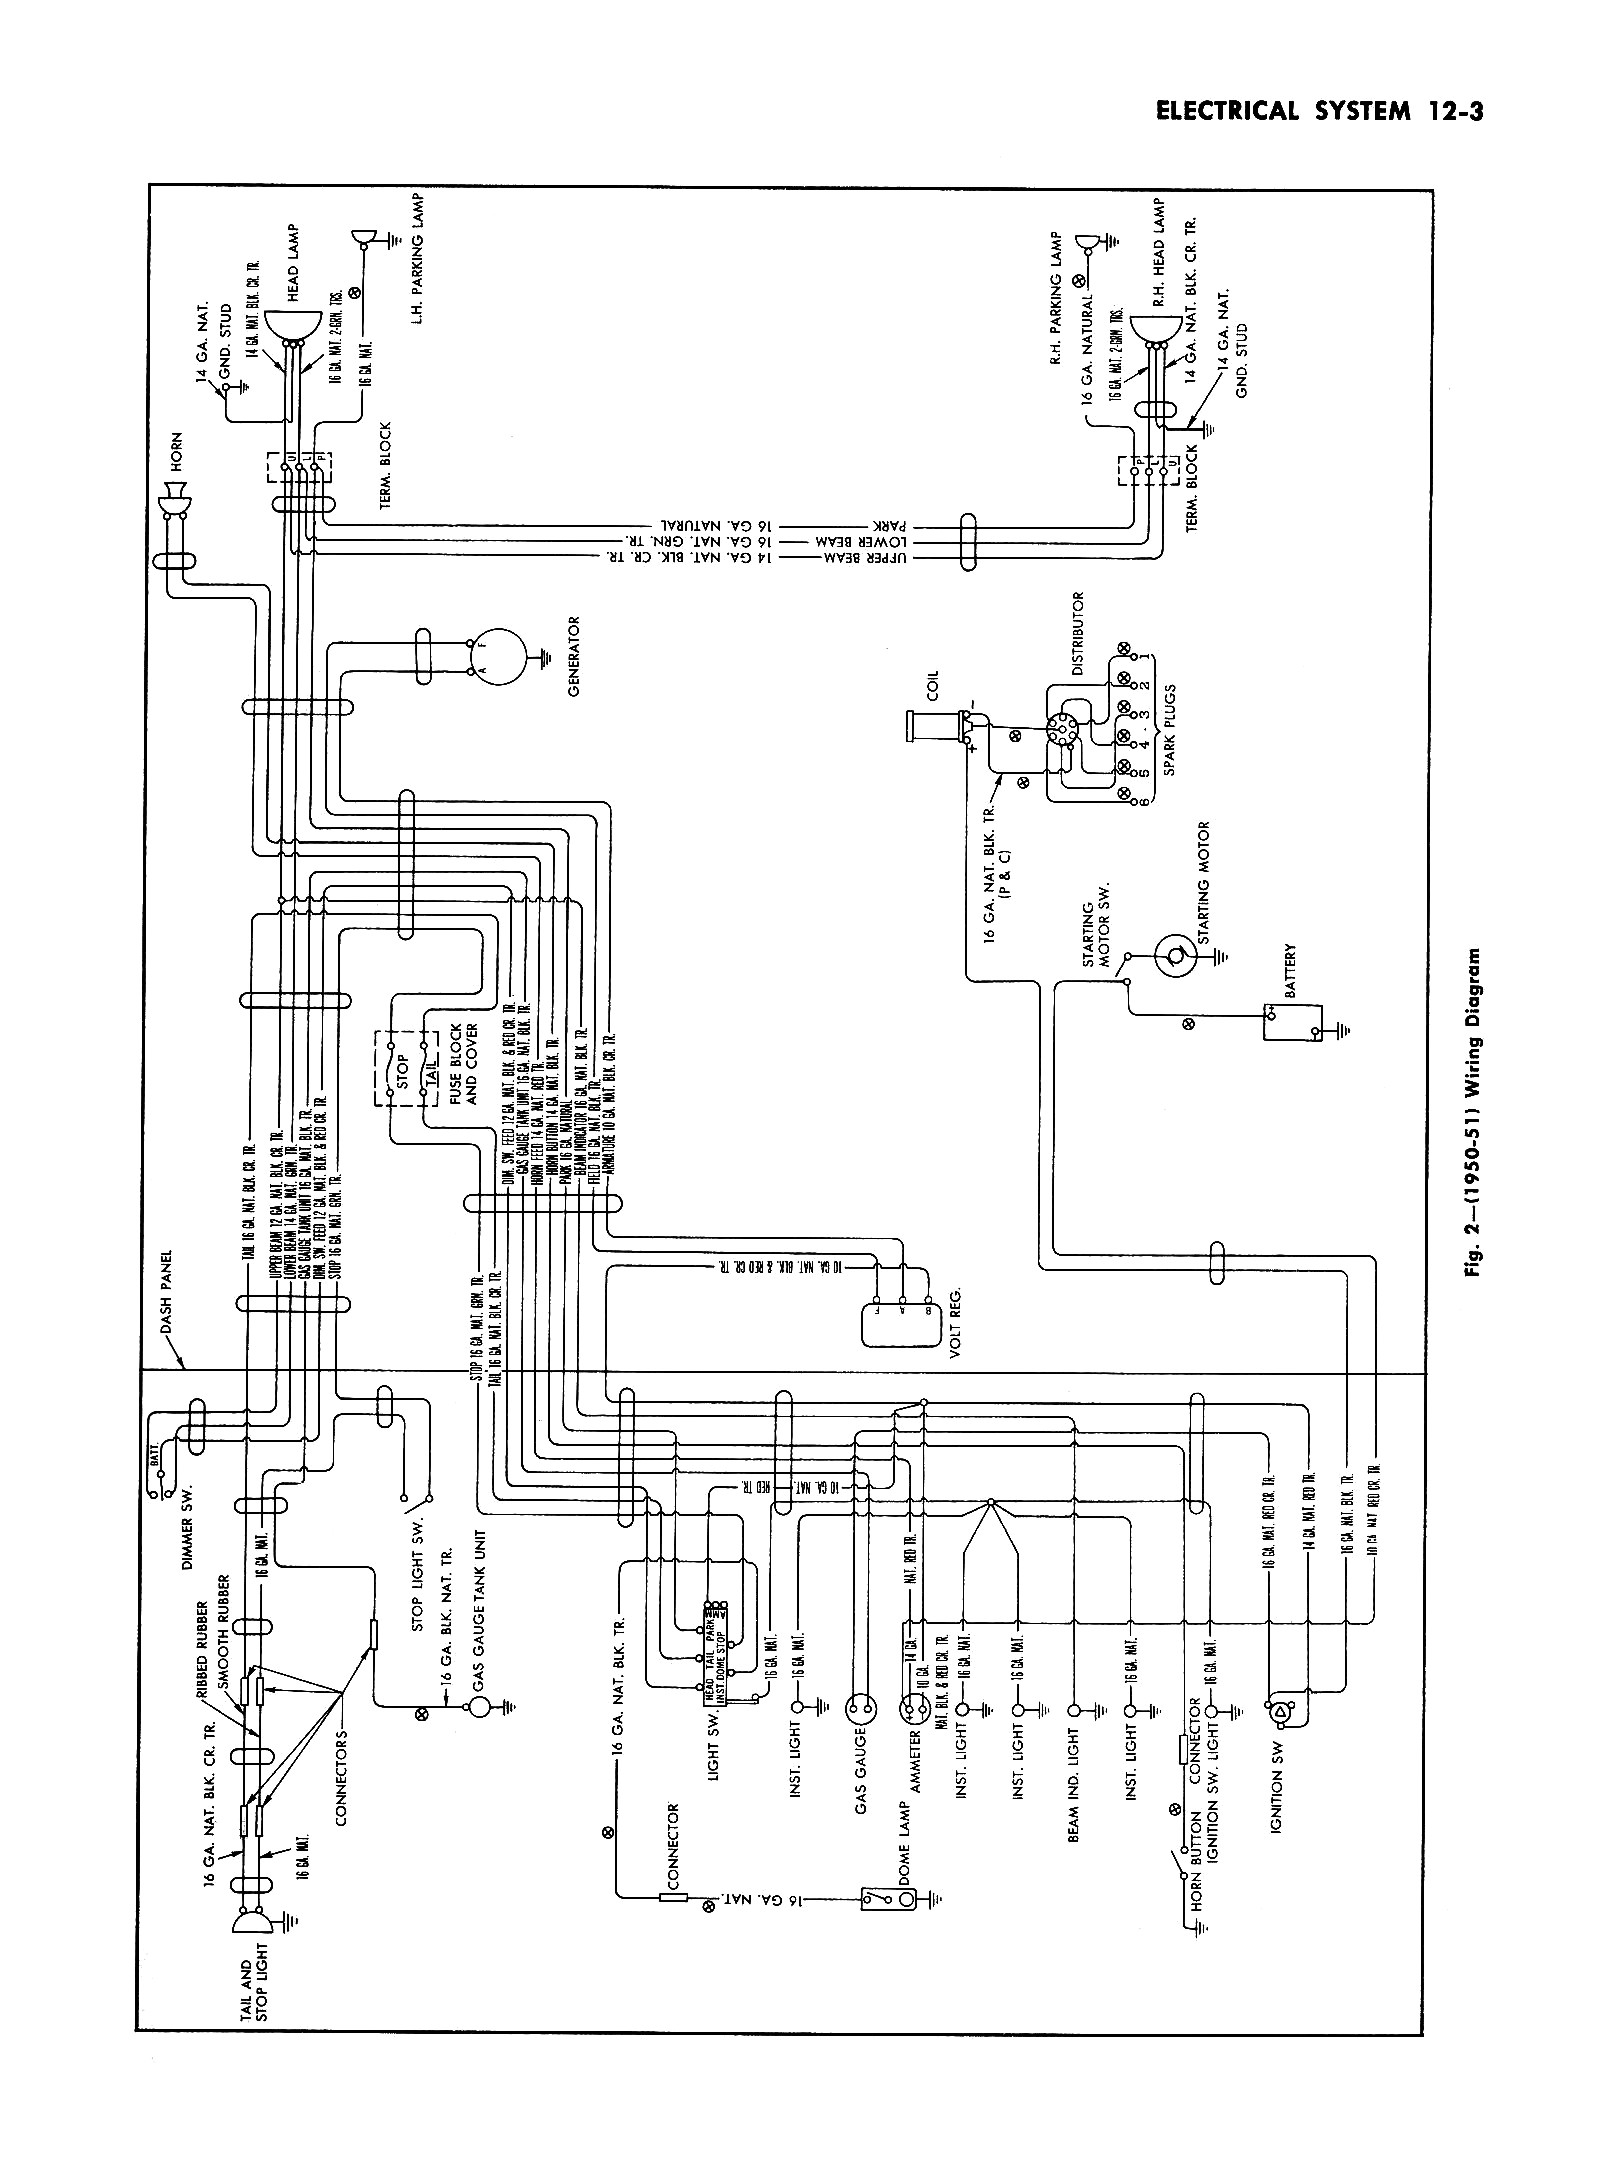 chevy wiring diagrams rh chevy oldcarmanualproject com 1950 chevy truck wiring diagram 1950 chevy deluxe wiring diagram